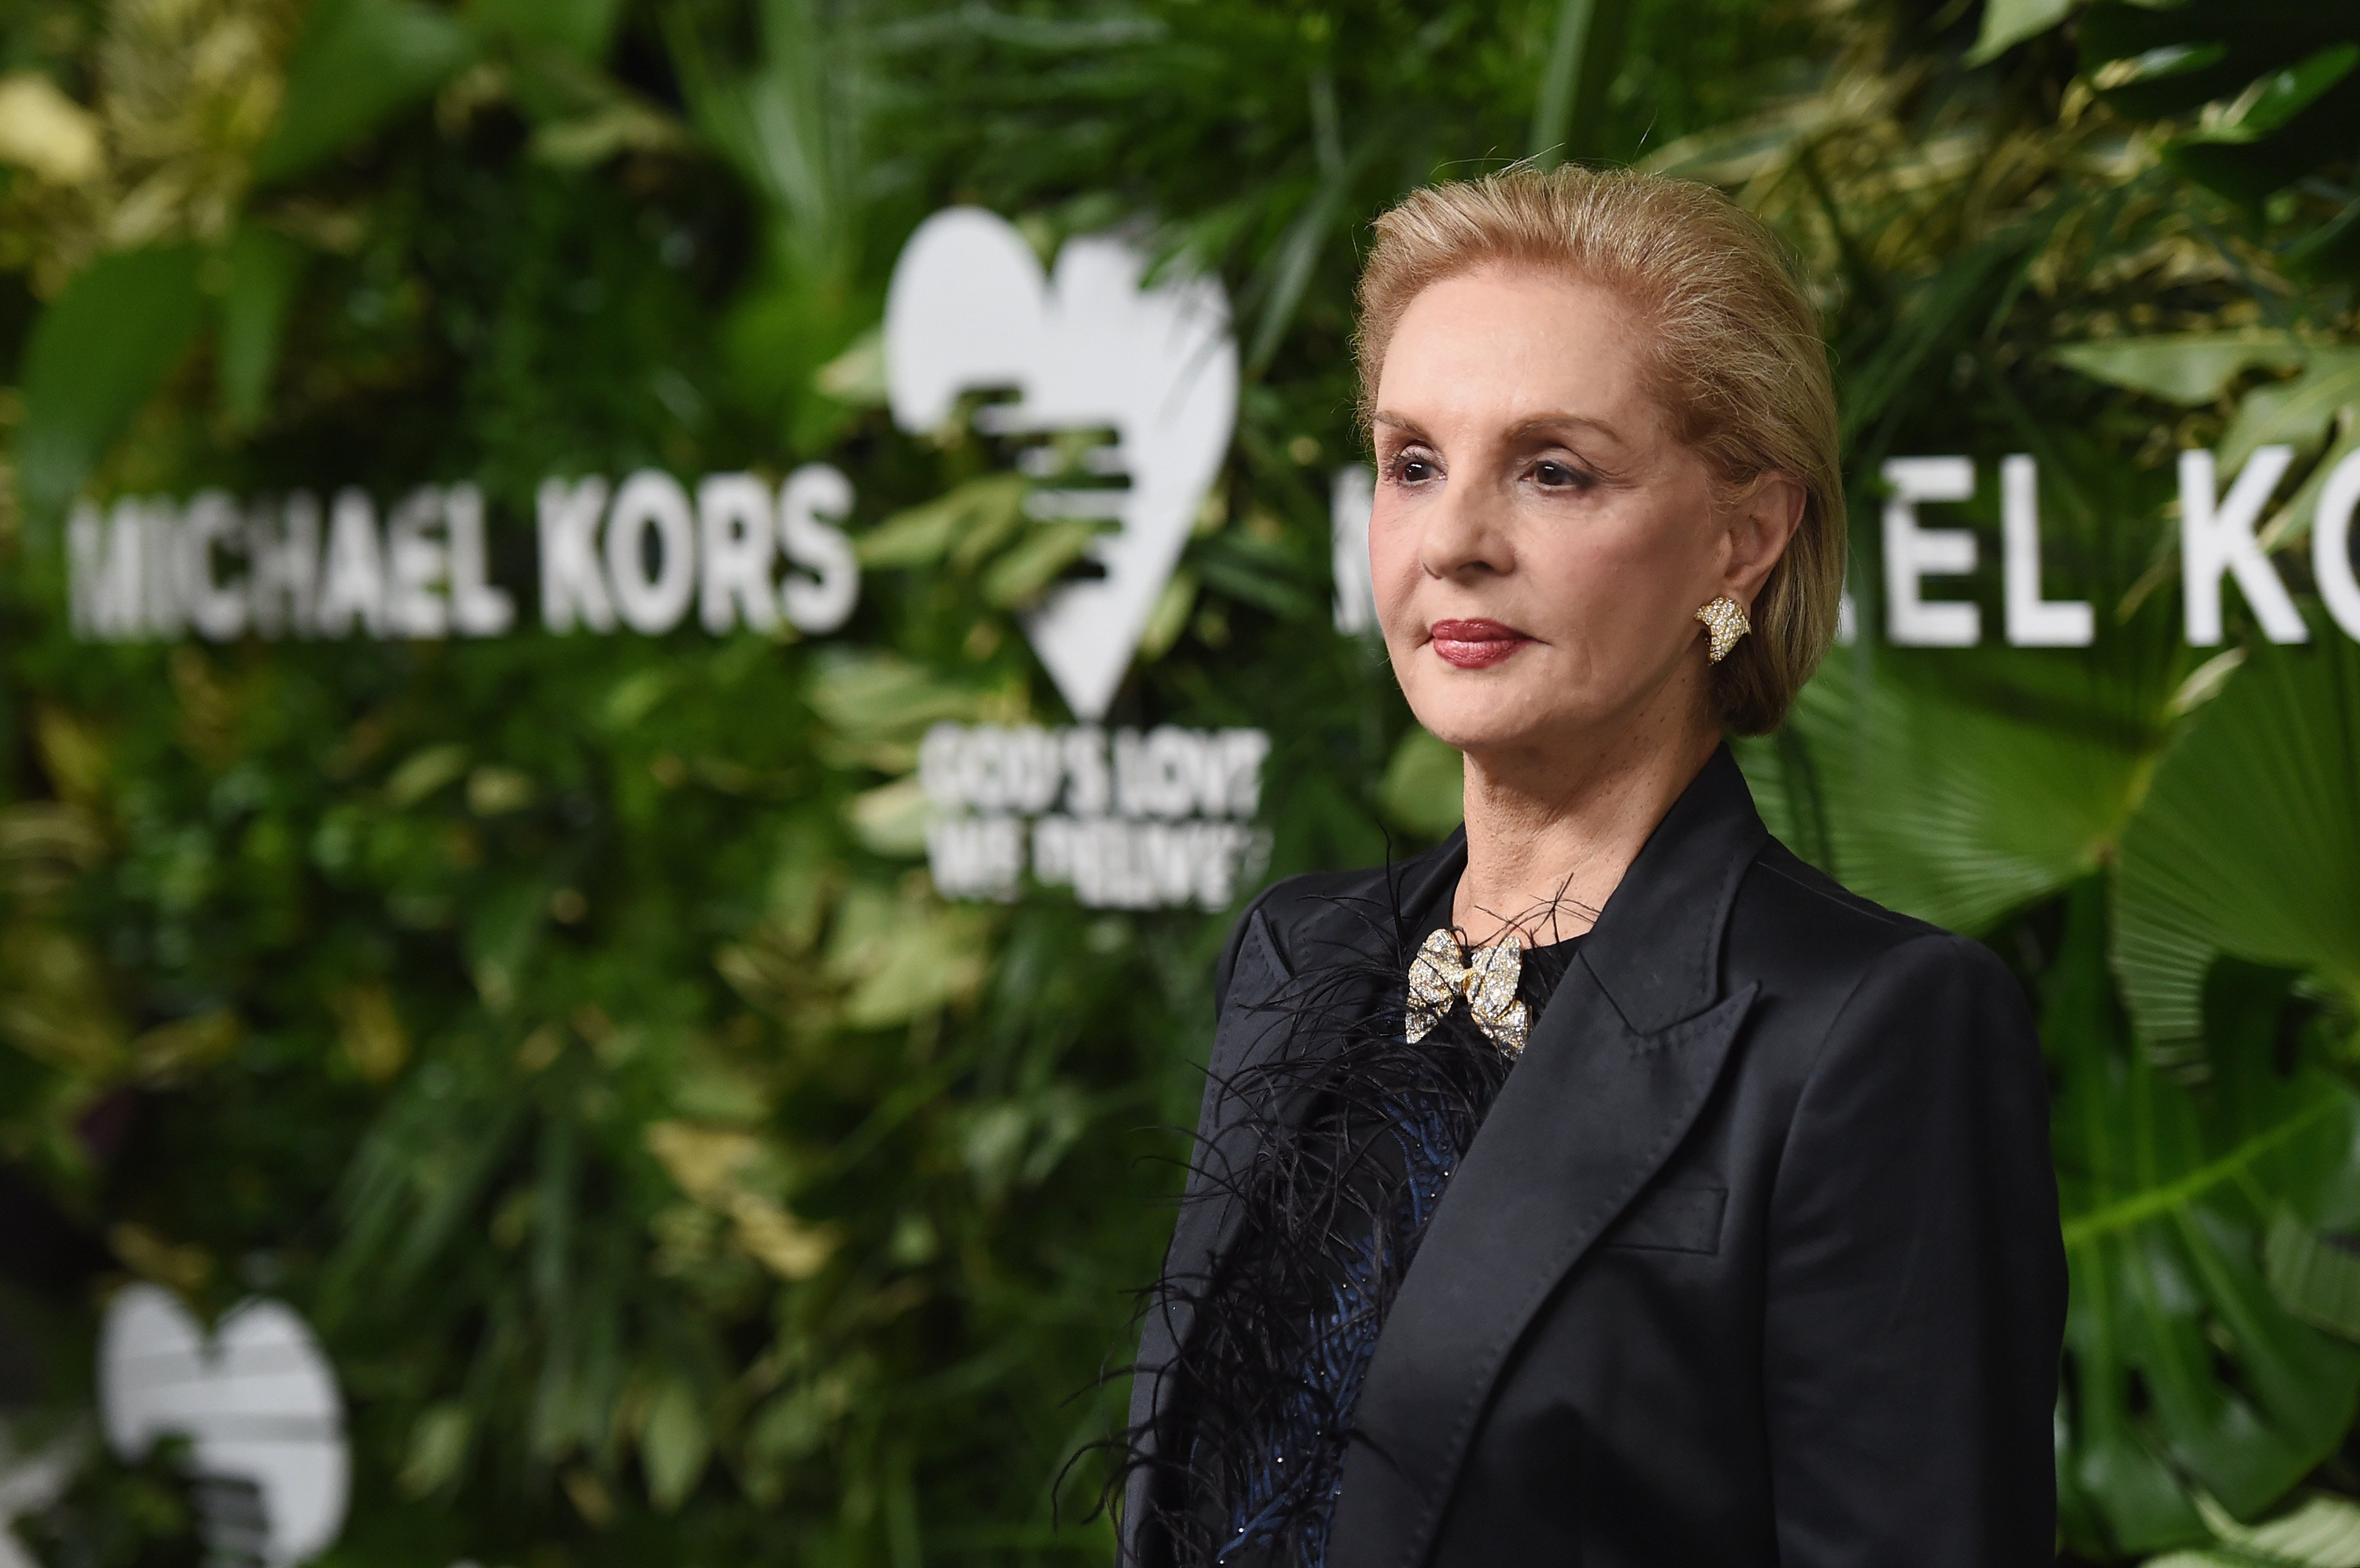 Carolina Herrera en los 11° Golden Heart Awards en beneficio a God's Love We Deliver, en octubre de 2017 en la ciudad de Nueva York || Foto: Getty Images